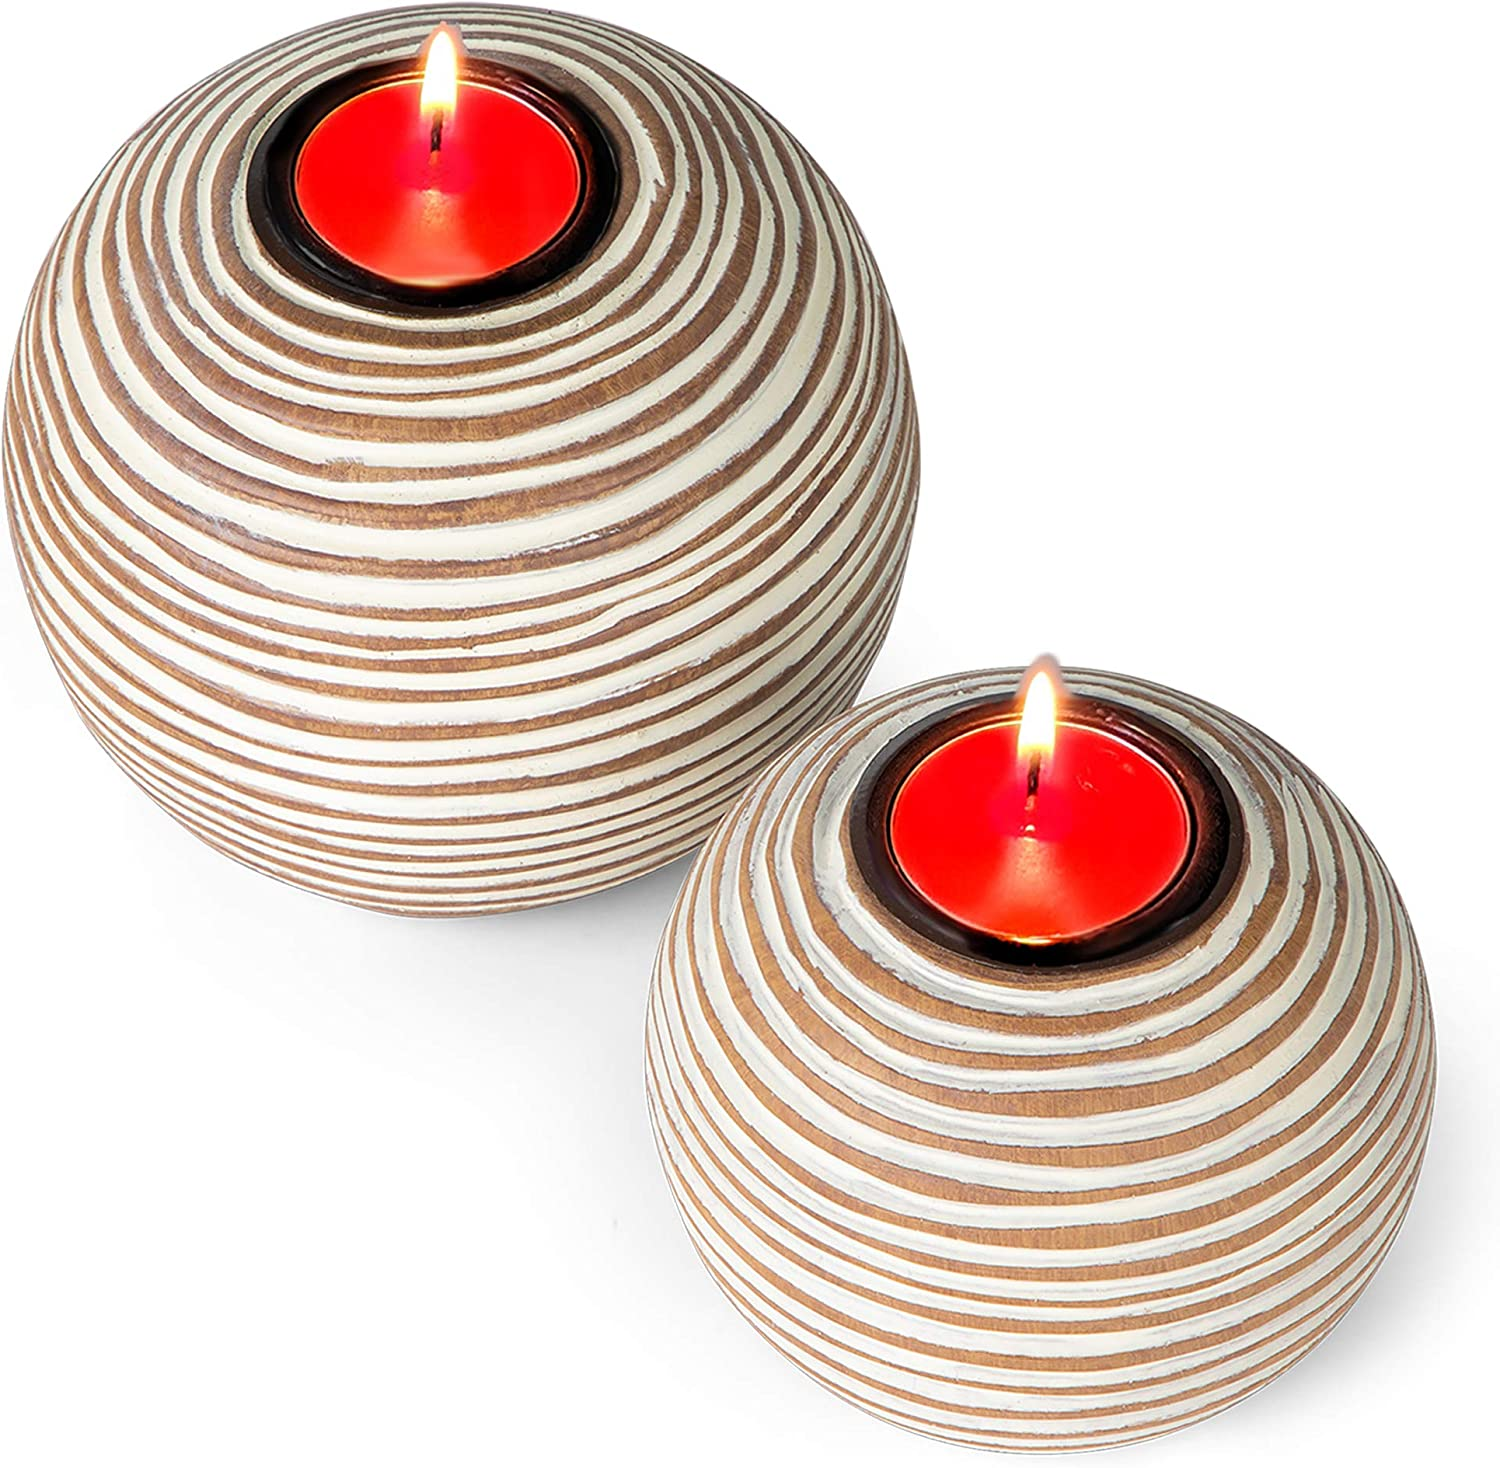 Gift Boxed Set of 2 Huey House Orb Candle Holders Light Brown Table Centerpieces for Dining or Living Room Spa Bathroom Kitchen Counter Mantle or Coffee Table Decor